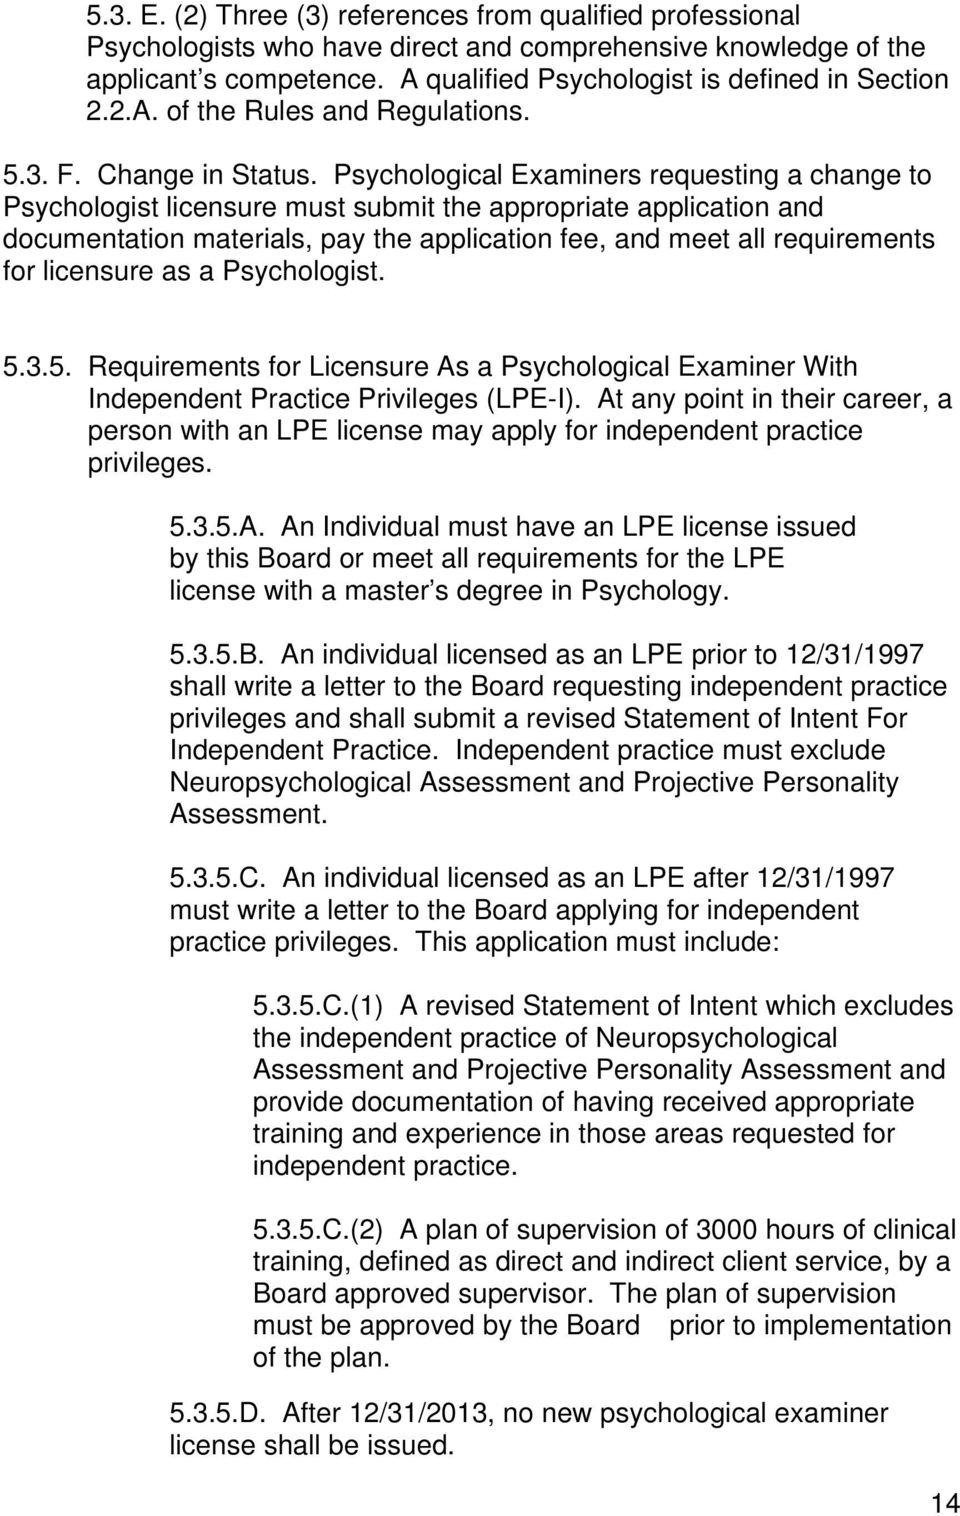 Psychological Examiners requesting a change to Psychologist licensure must submit the appropriate application and documentation materials, pay the application fee, and meet all requirements for